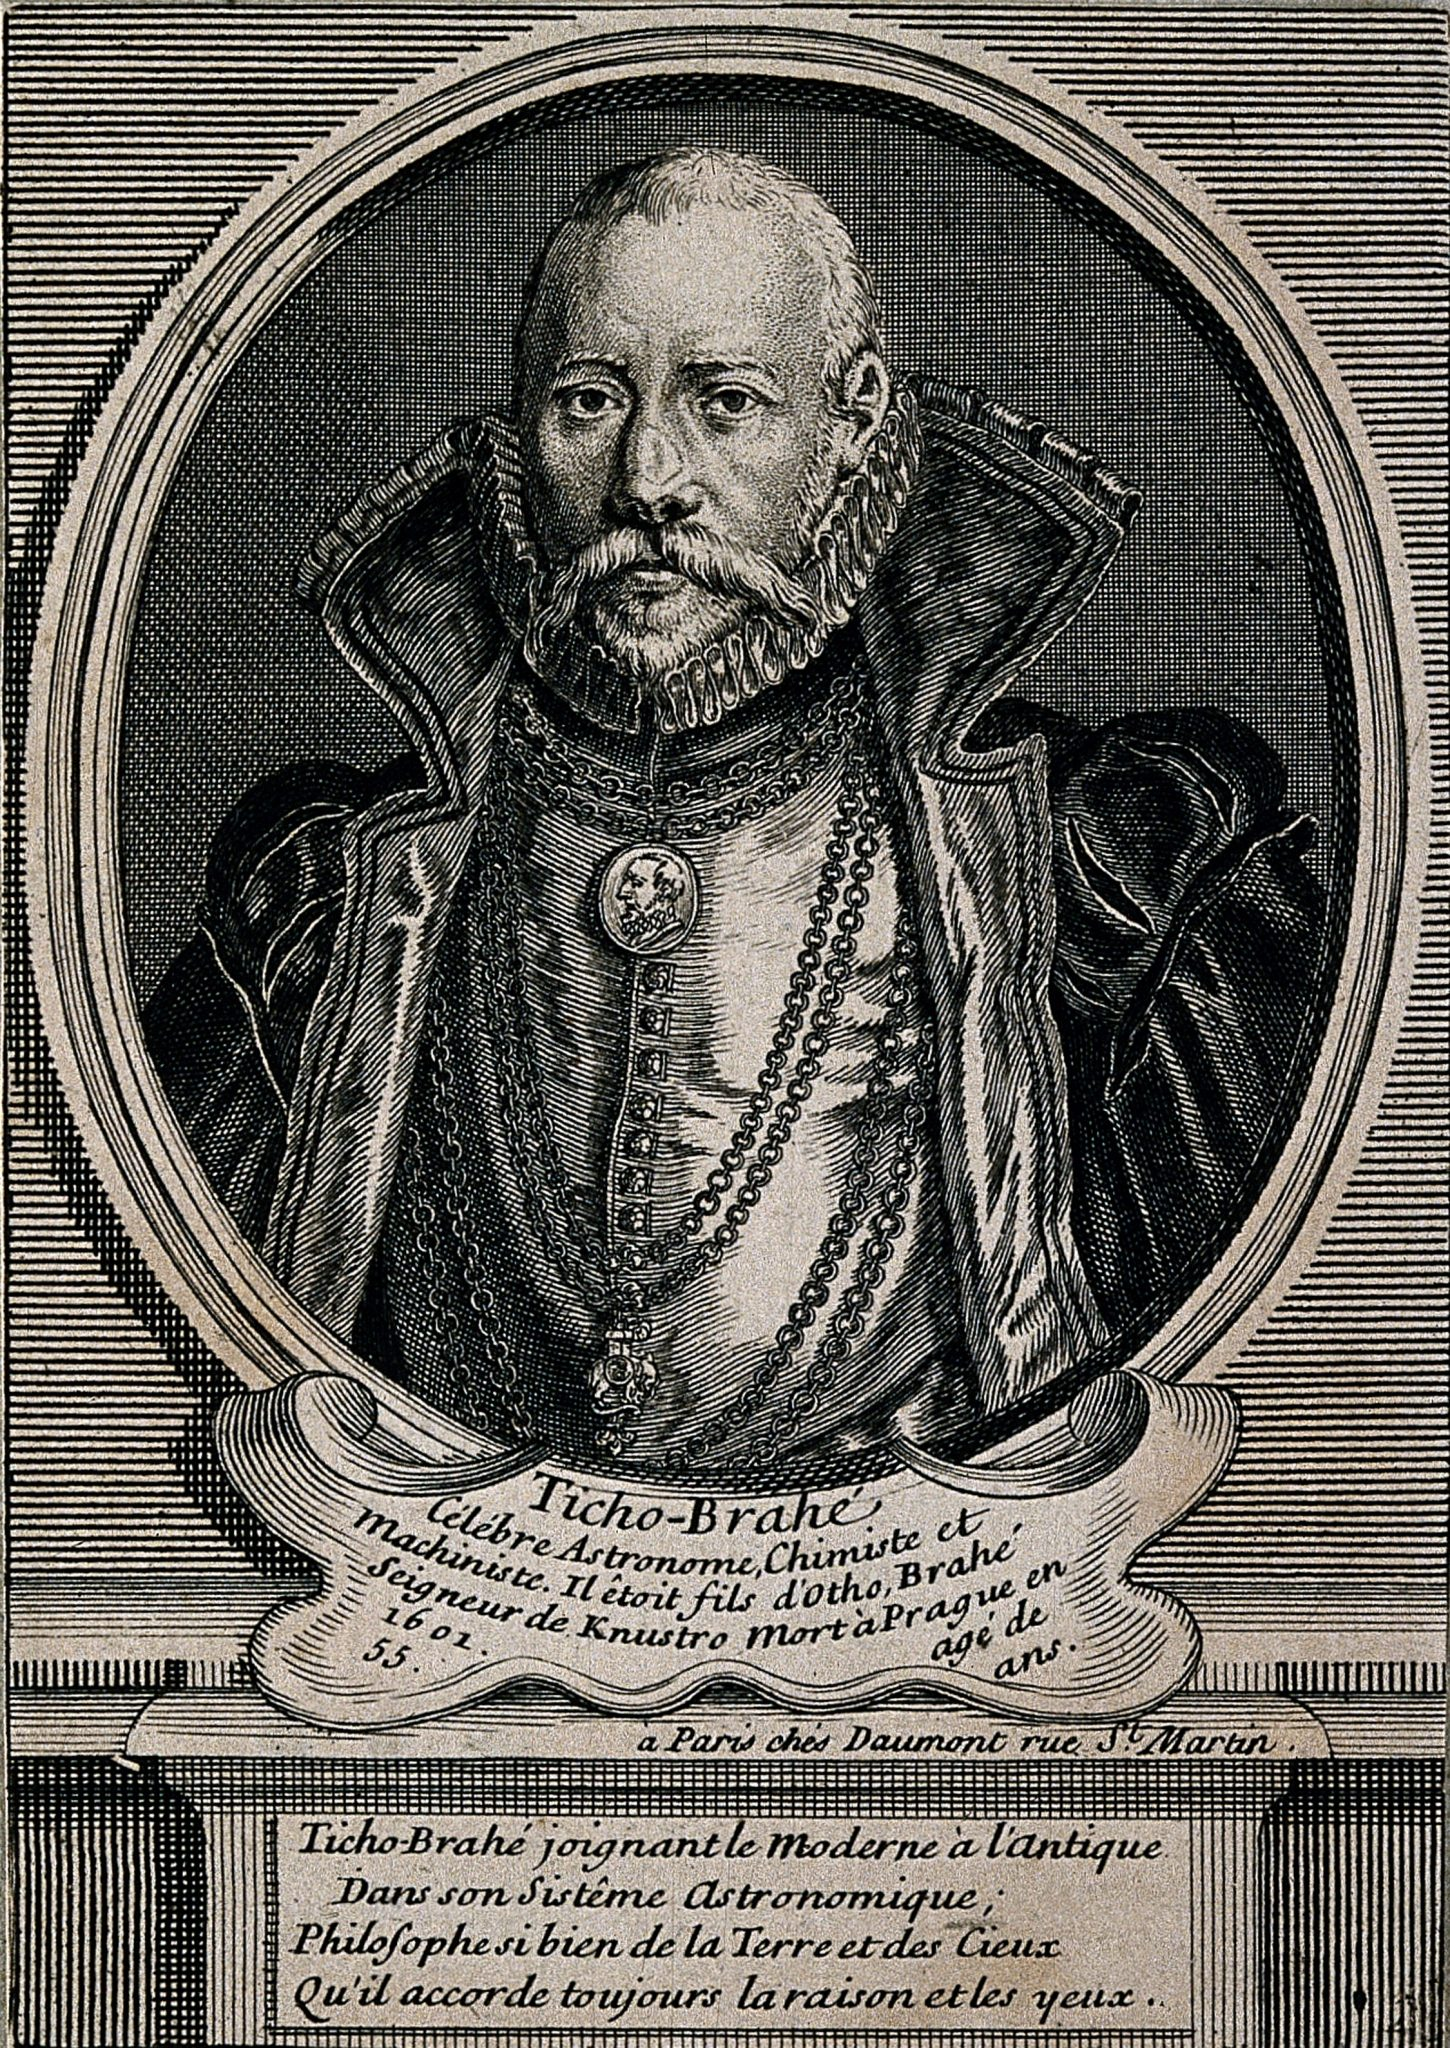 V0000744 Tycho Brahe. Line engraving after T. Gemperlin, 1586. Credit: Wellcome Library, London. Wellcome Images images@wellcome.ac.uk http://wellcomeimages.org Tycho Brahe. Line engraving after T. Gemperlin, 1586. 1586 By: T. GemperlinPublished: - Copyrighted work available under Creative Commons Attribution only licence CC BY 4.0 http://creativecommons.org/licenses/by/4.0/